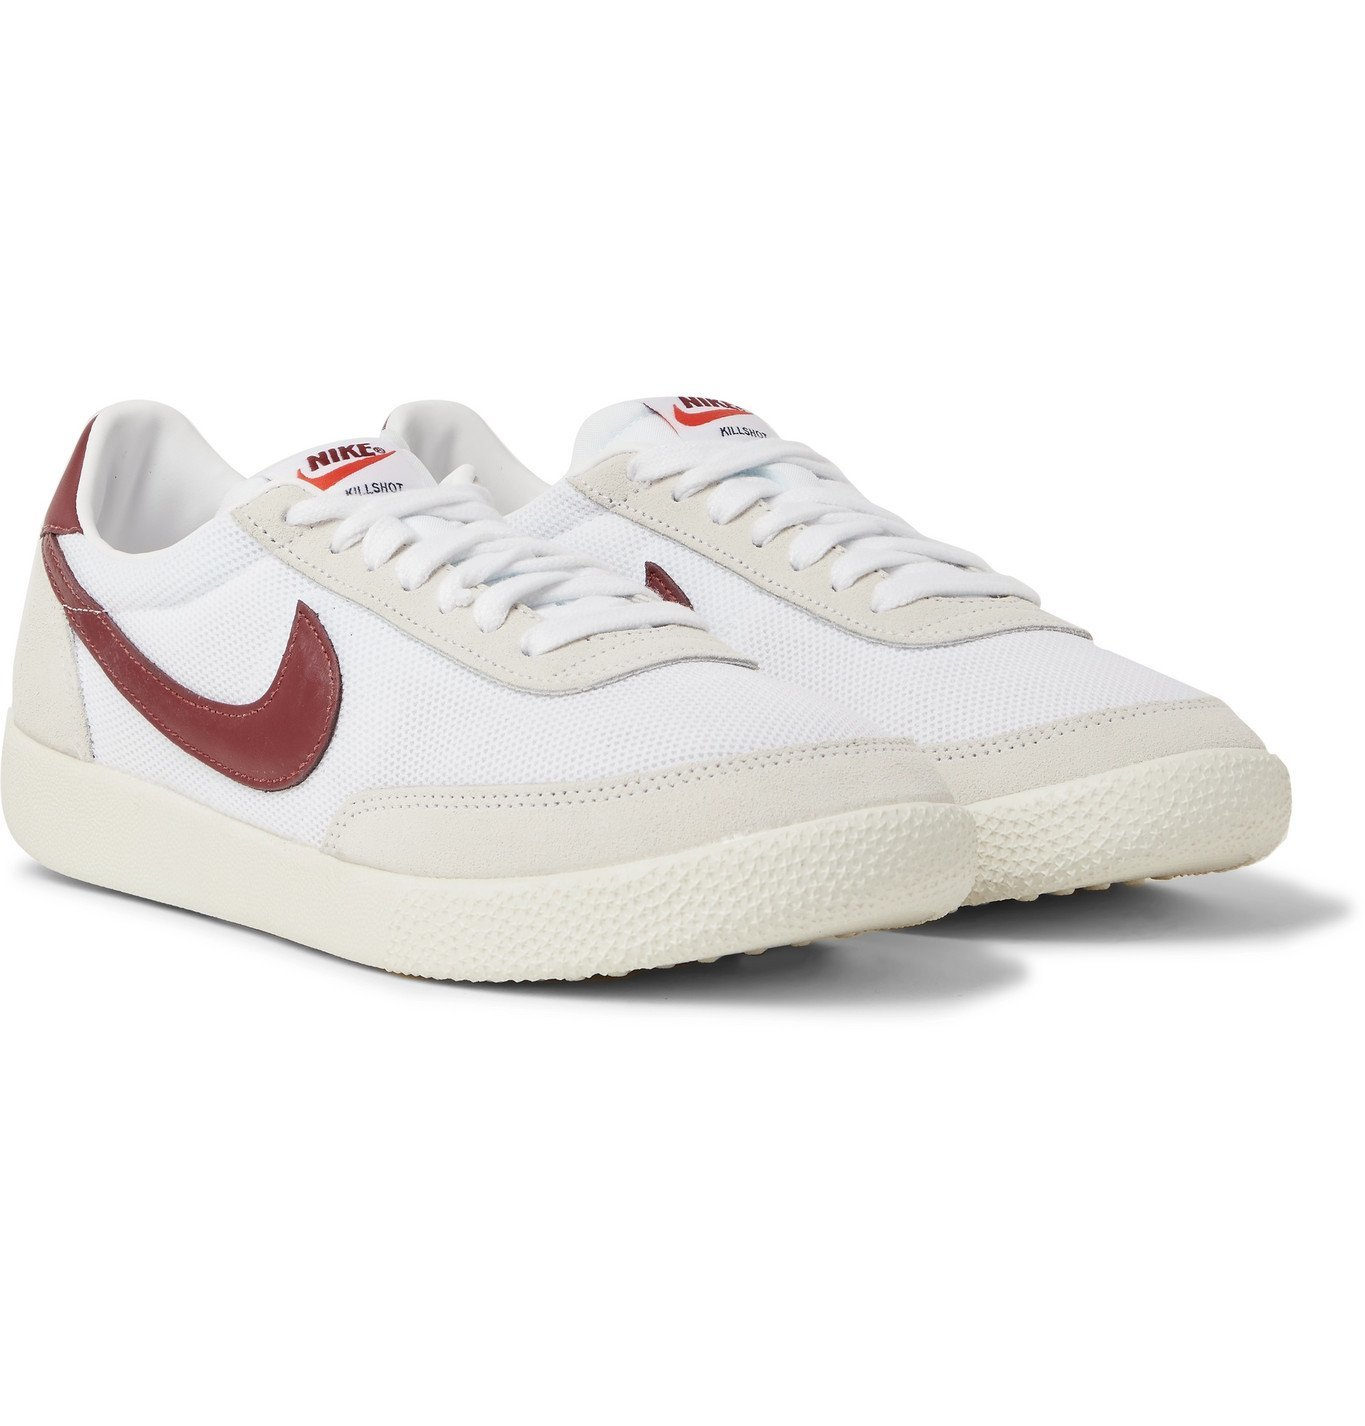 Photo: NIKE - Killshot OG Mesh, Leather and Suede Sneakers - White